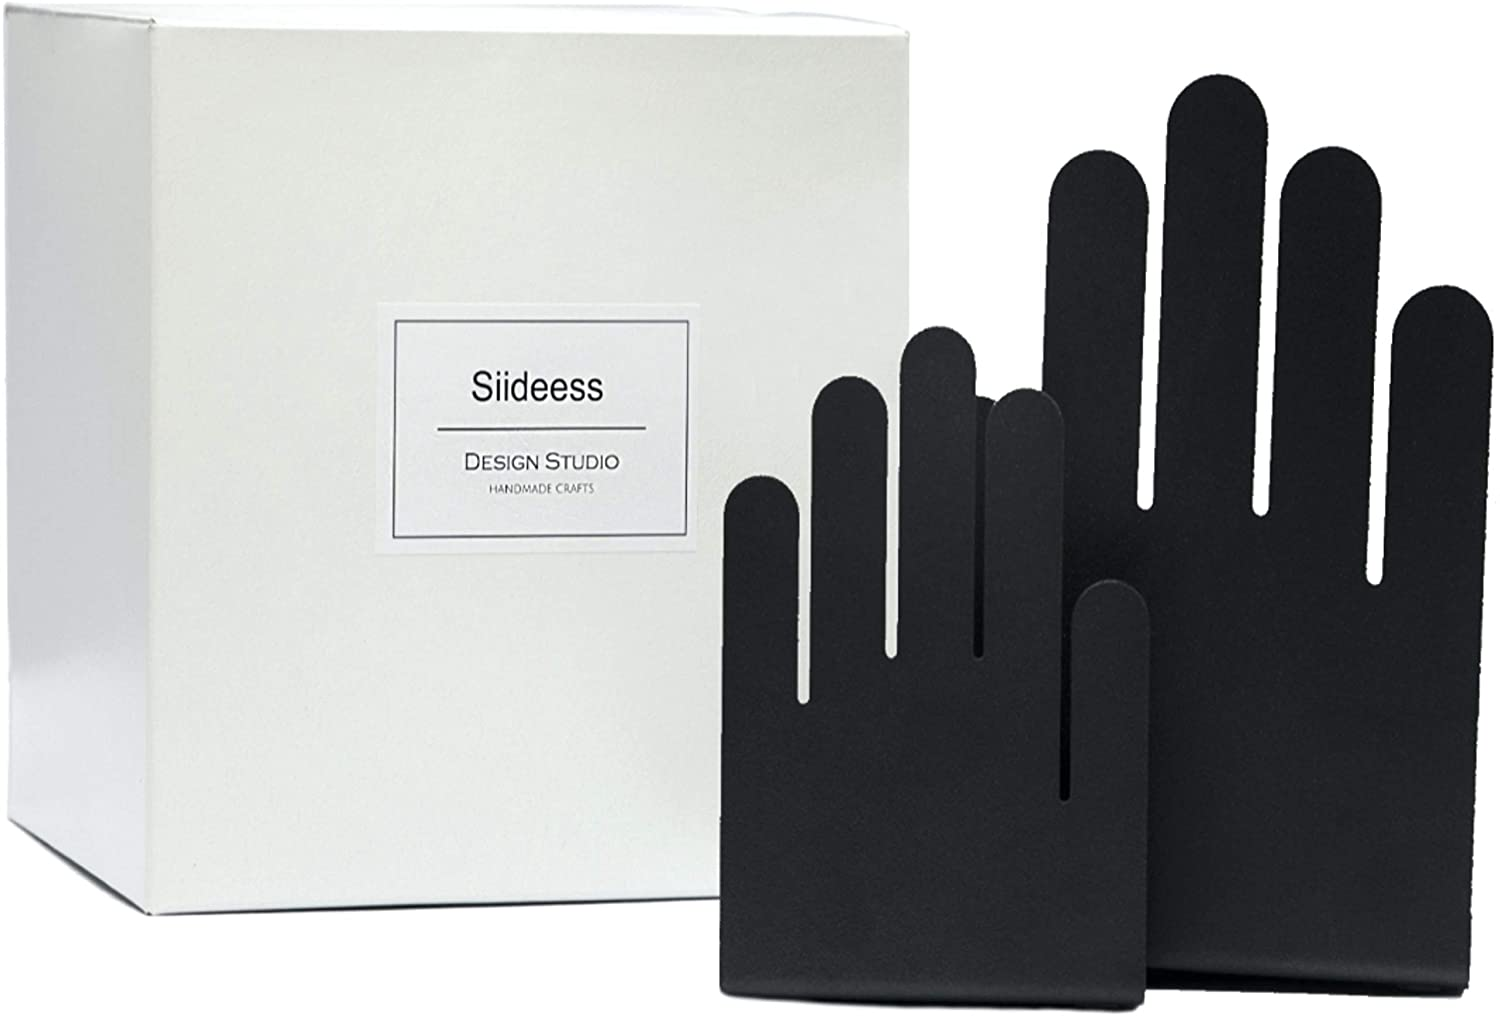 Siideess Handmade Crafts - Hand Shaped Decorative Bookends - Great Decor for Your Shelves, Desk or Credenza - Great Gifts Choice with Gift Box Included